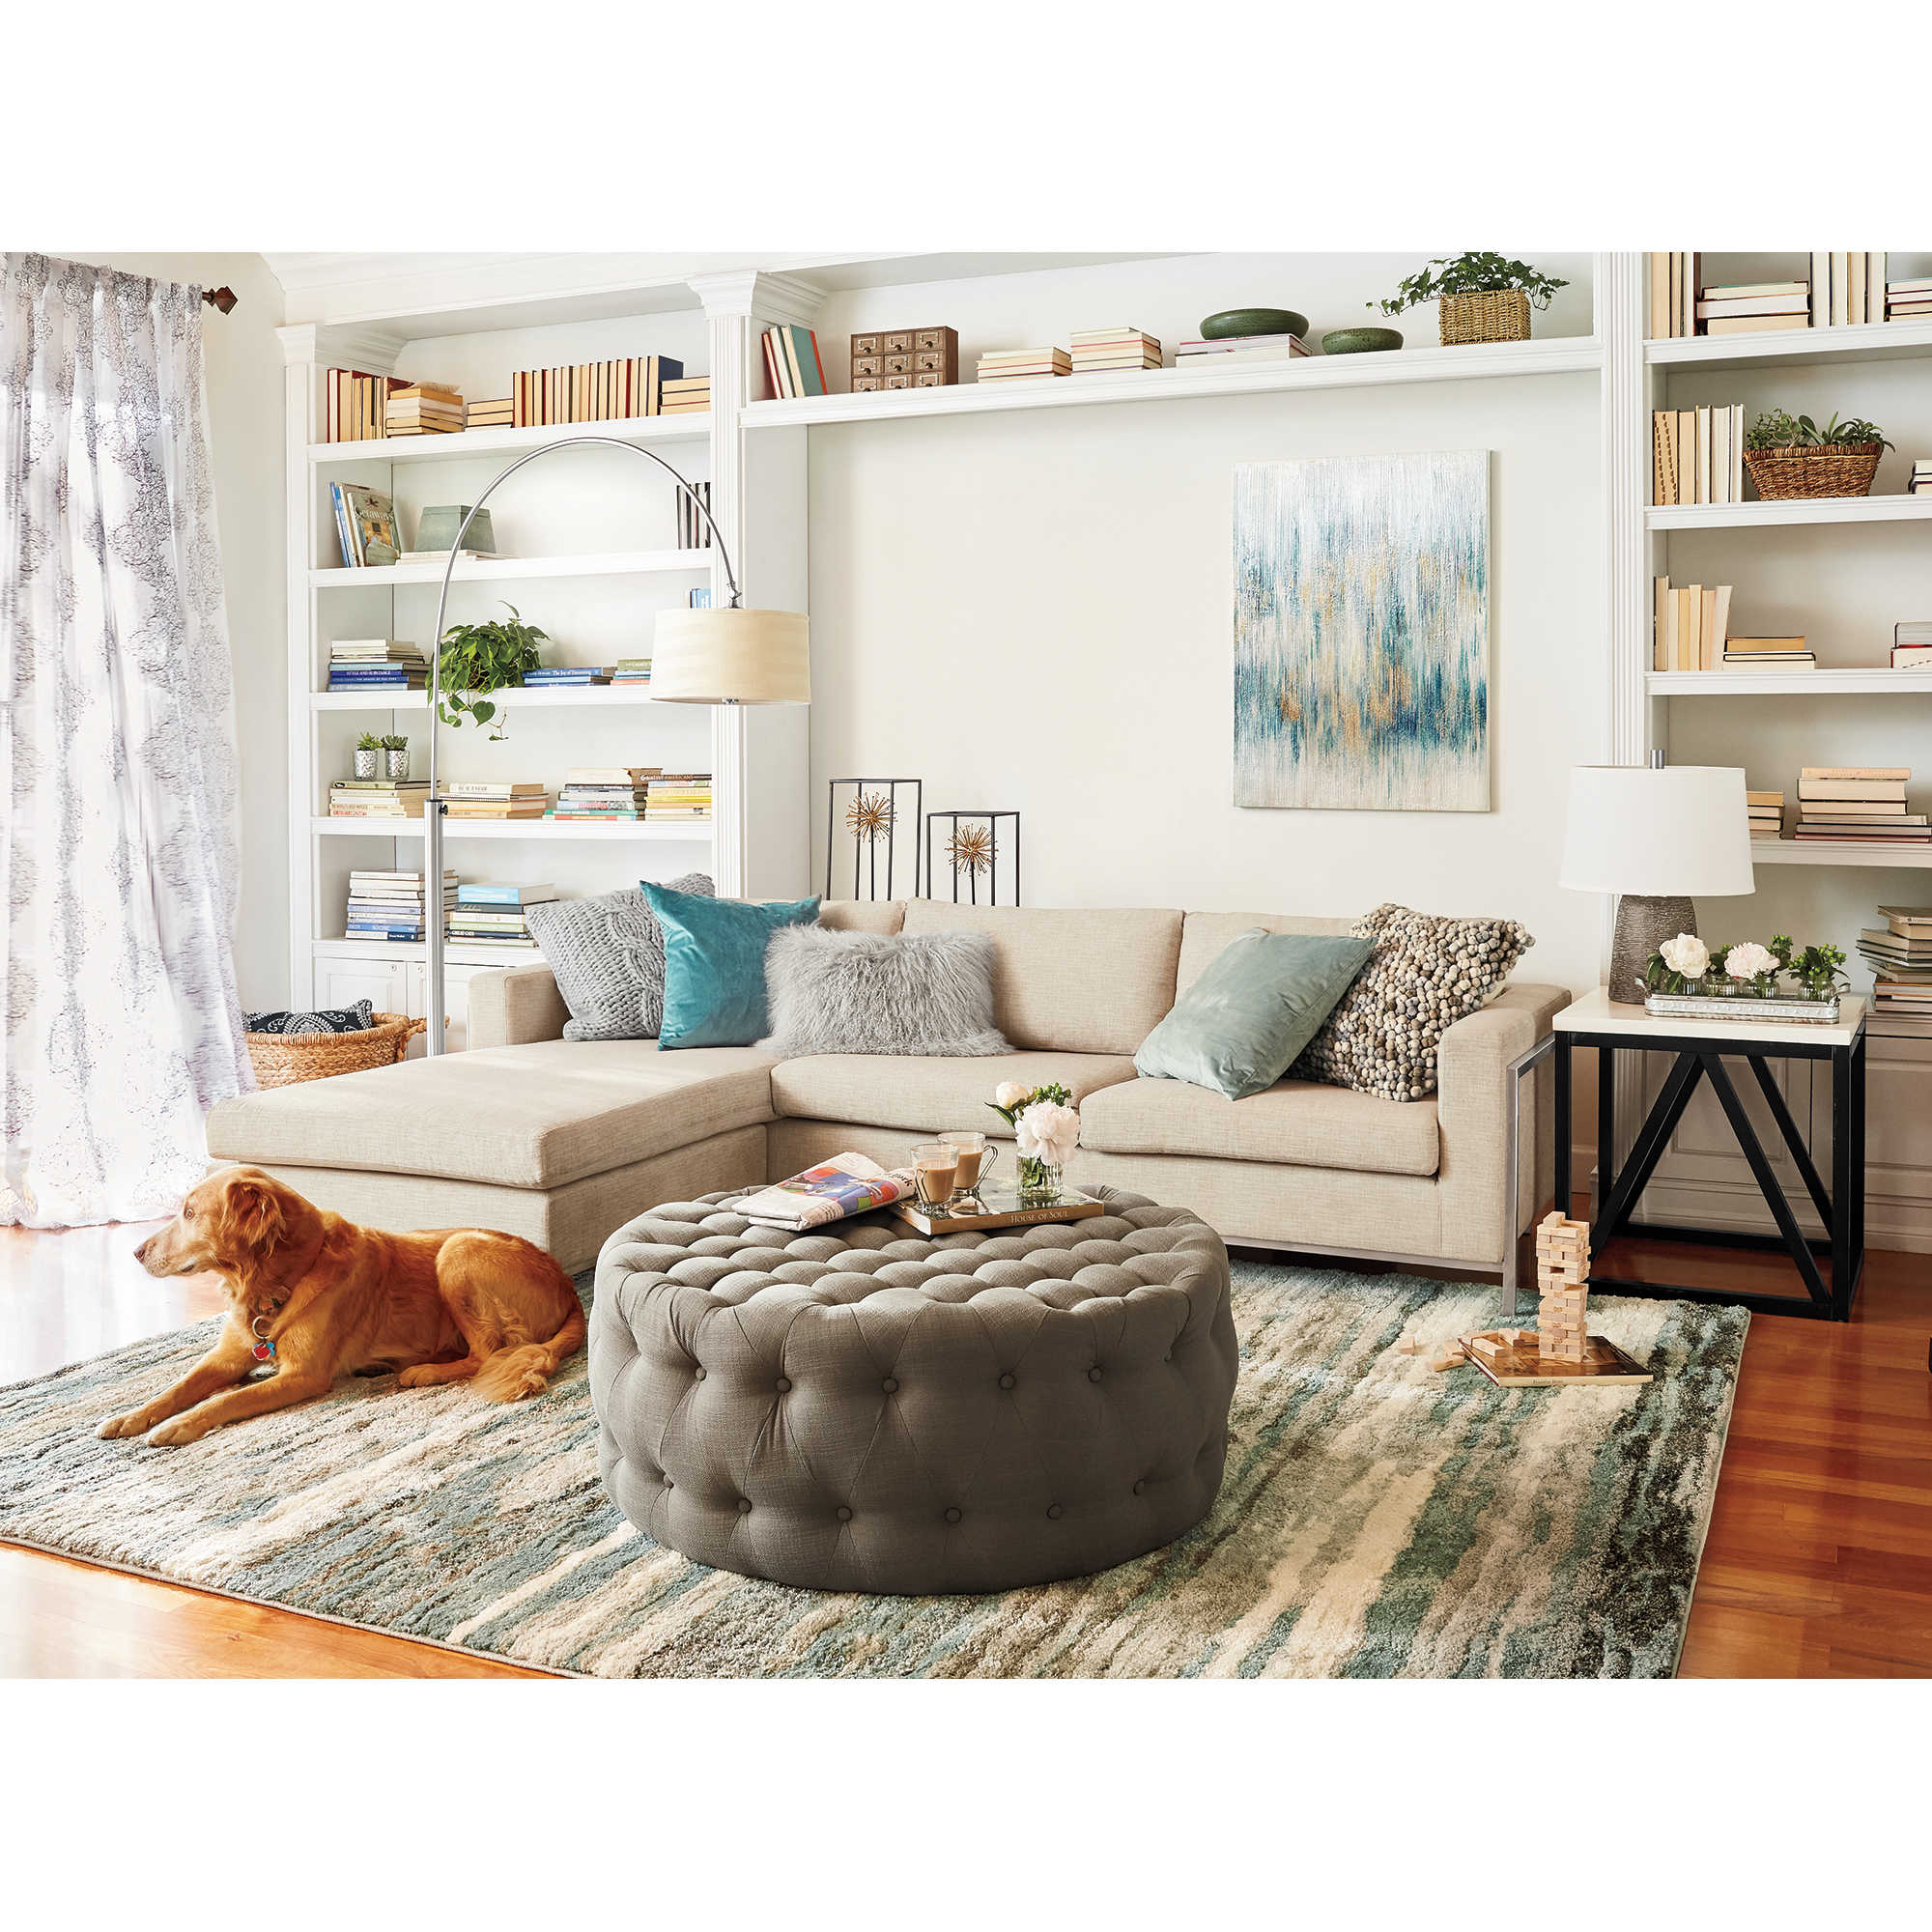 Neutral Living Room - Bed Bath & Beyond